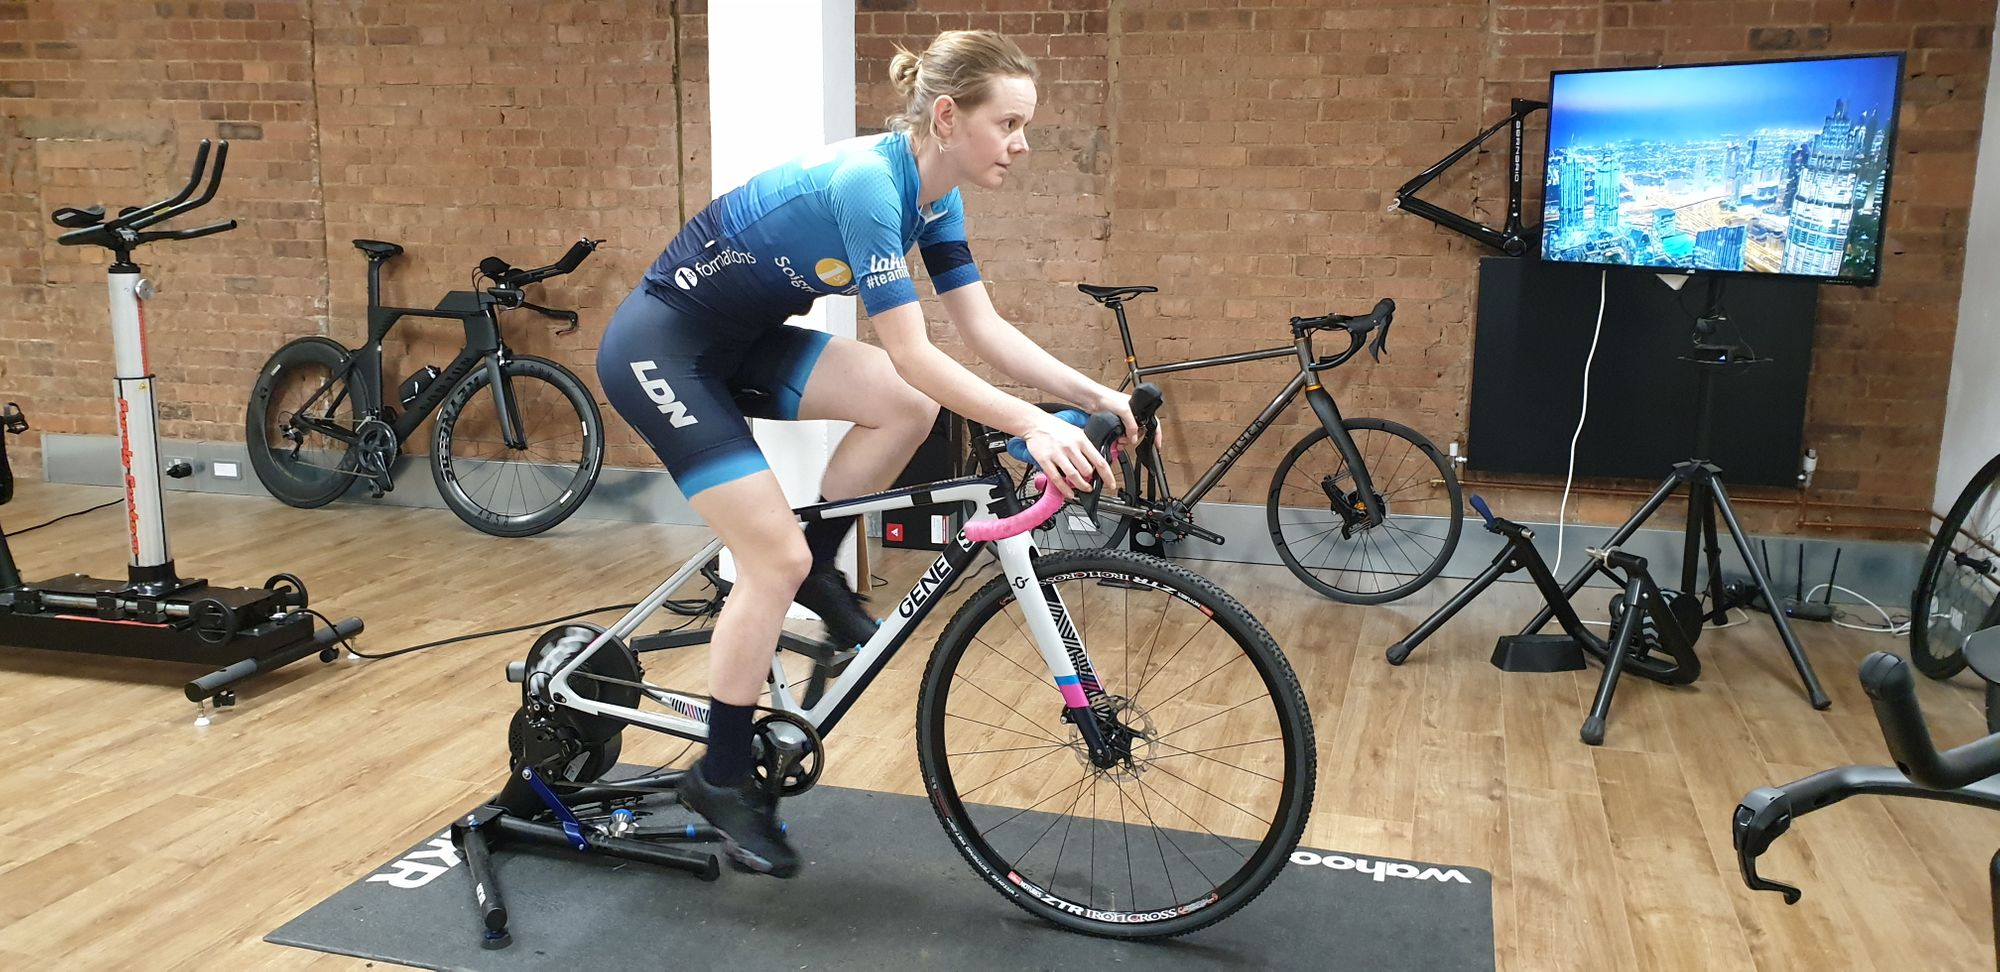 Turbo Training over the Winter: Do's and Don'ts | Laka's Guide To Turbo Training